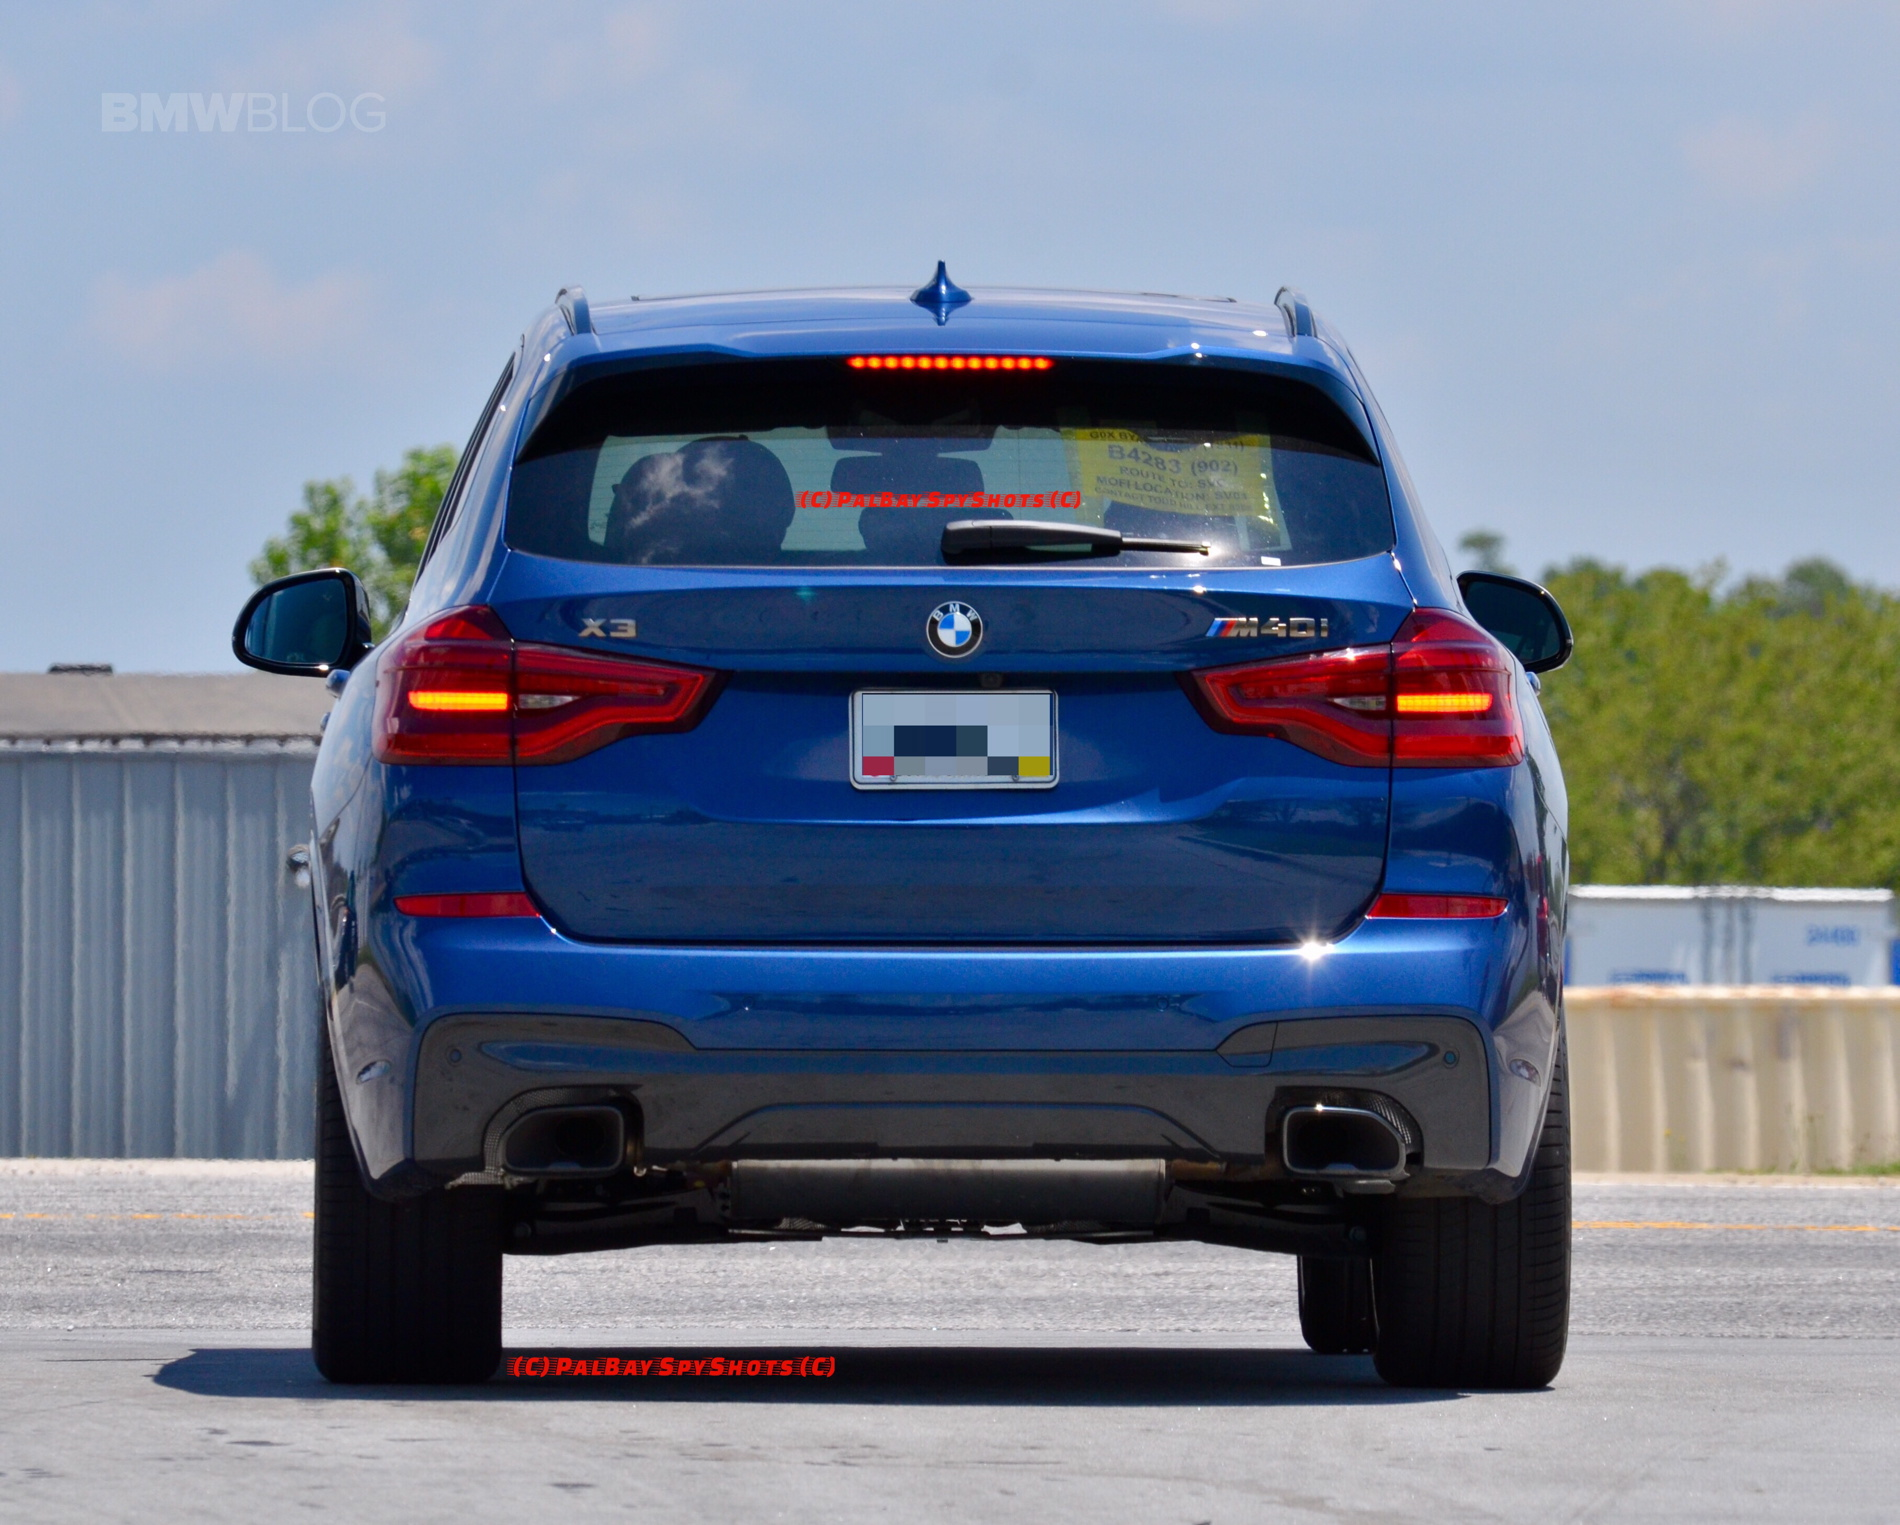 photos bmw x3 m40i first seen on the road bmw sg. Black Bedroom Furniture Sets. Home Design Ideas